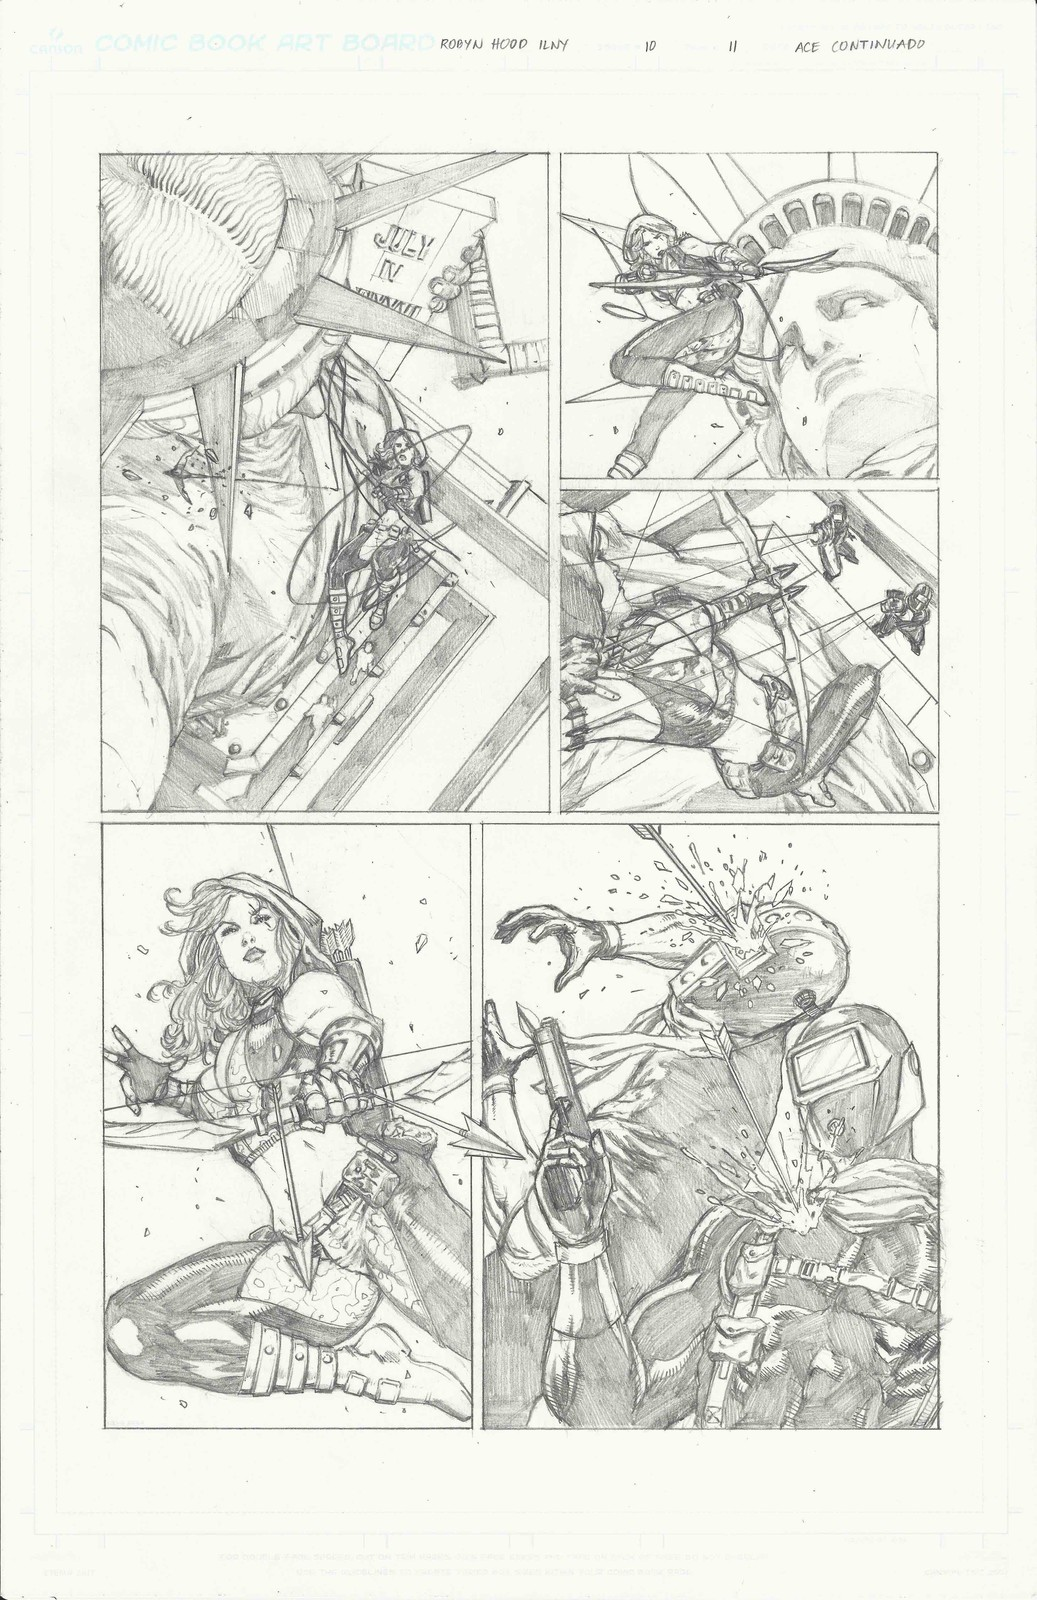 Page 11 of Robyn Hood I Love New York #10 from Zenescope Entertainment.